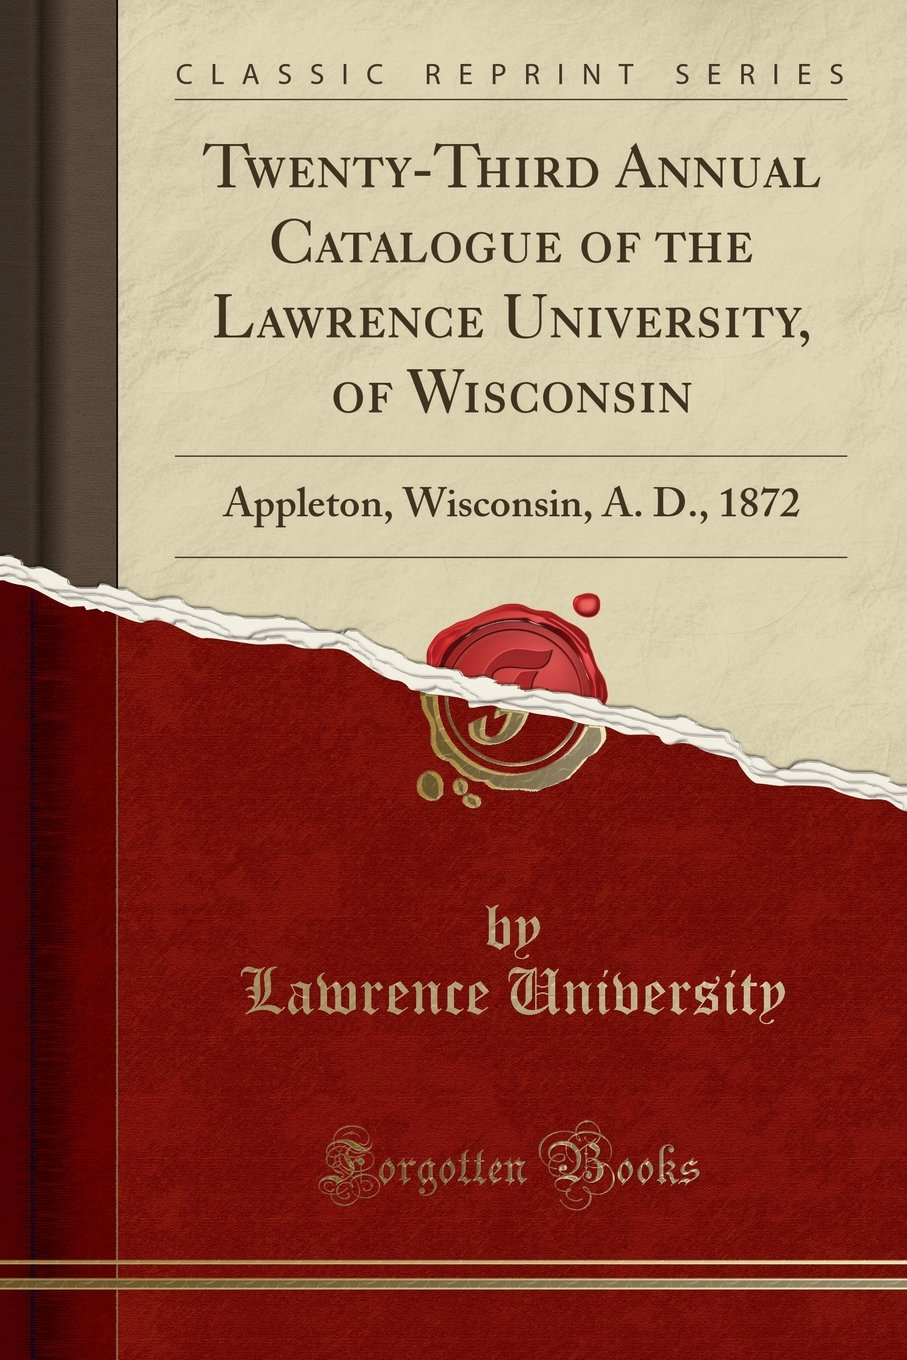 Twenty-Third Annual Catalogue of the Lawrence University, of Wisconsin: Appleton, Wisconsin, A. D., 1872 (Classic Reprint) pdf